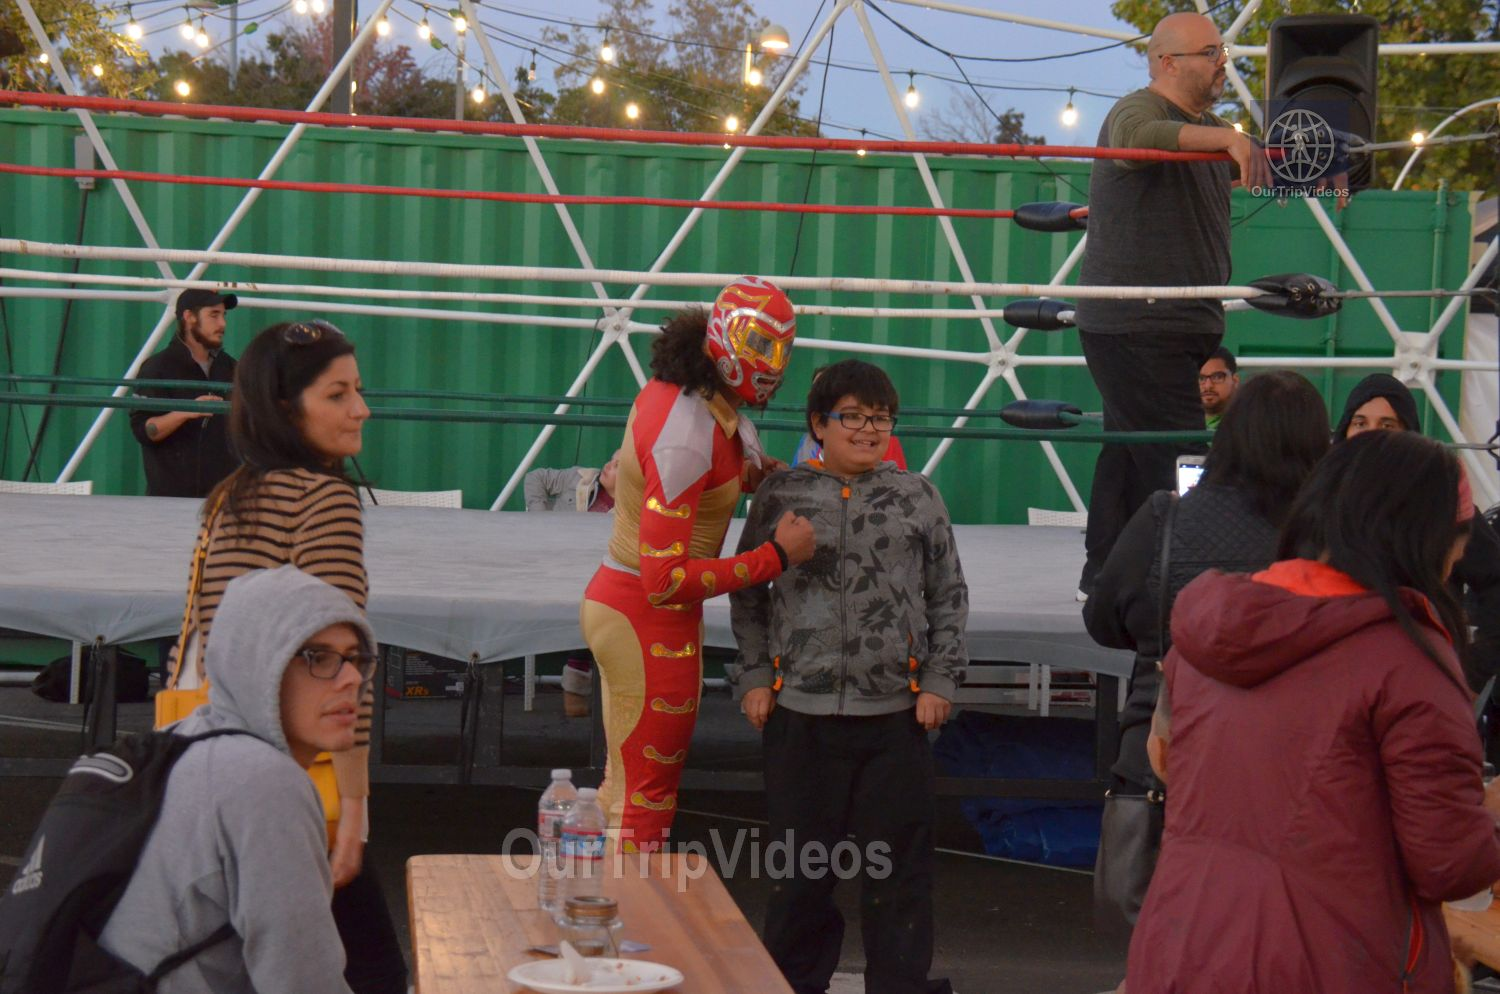 Throwdown at the Thunderdome (Luchador Wrestling), Fremont, CA, USA - Picture 18 of 25